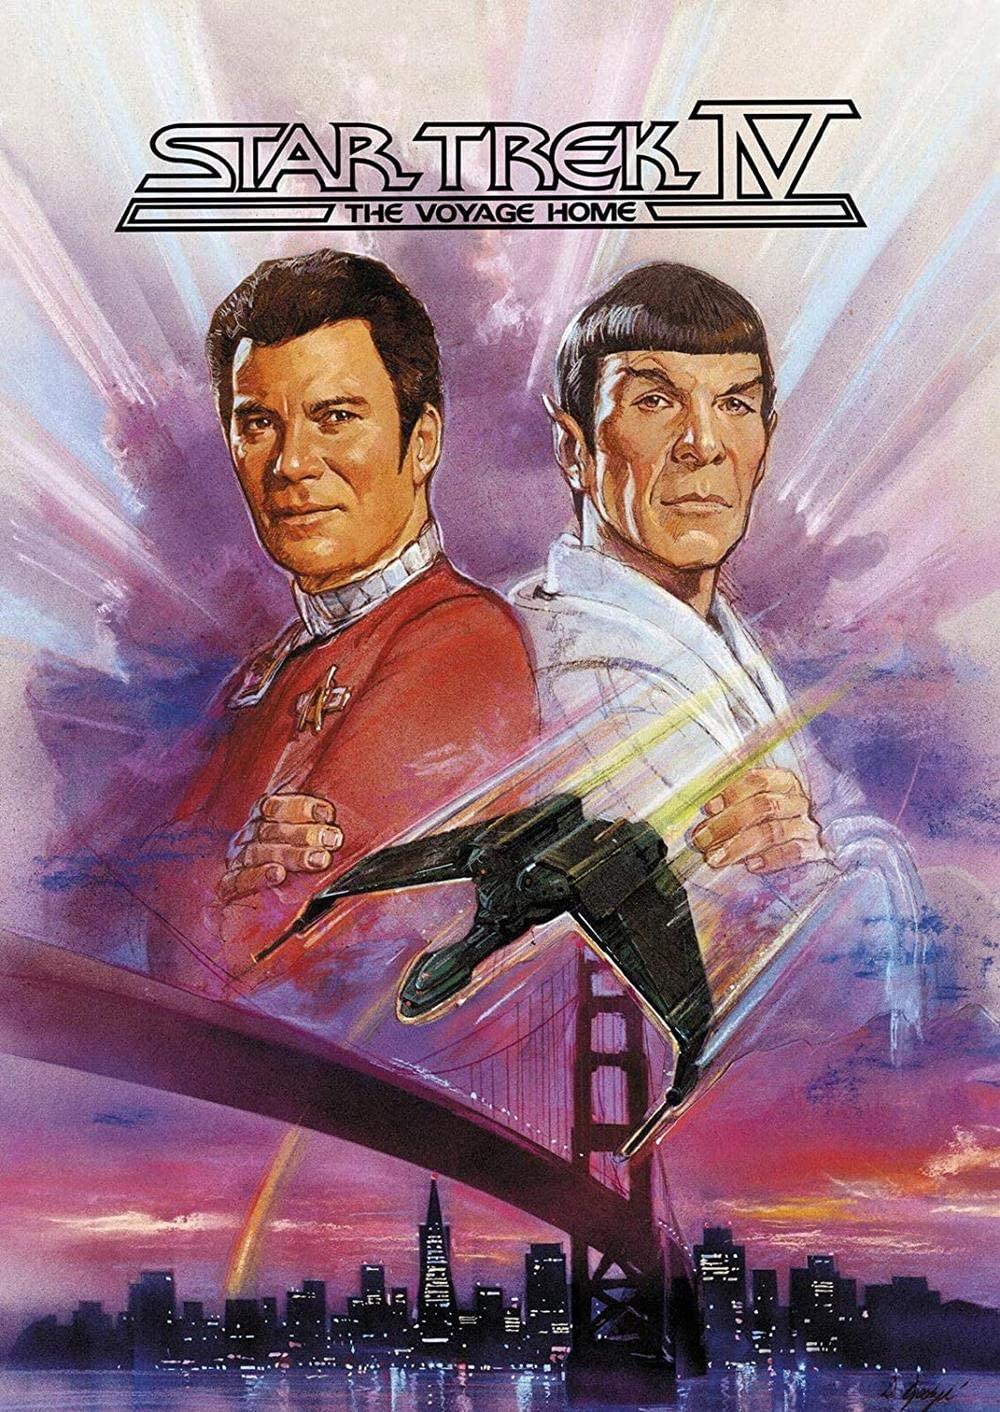 WisdomCourage Star #Trek Iv The Voyage Home Movie Poster William Shatner Spock Print Wall Decor Art Gifts Lovers Poster